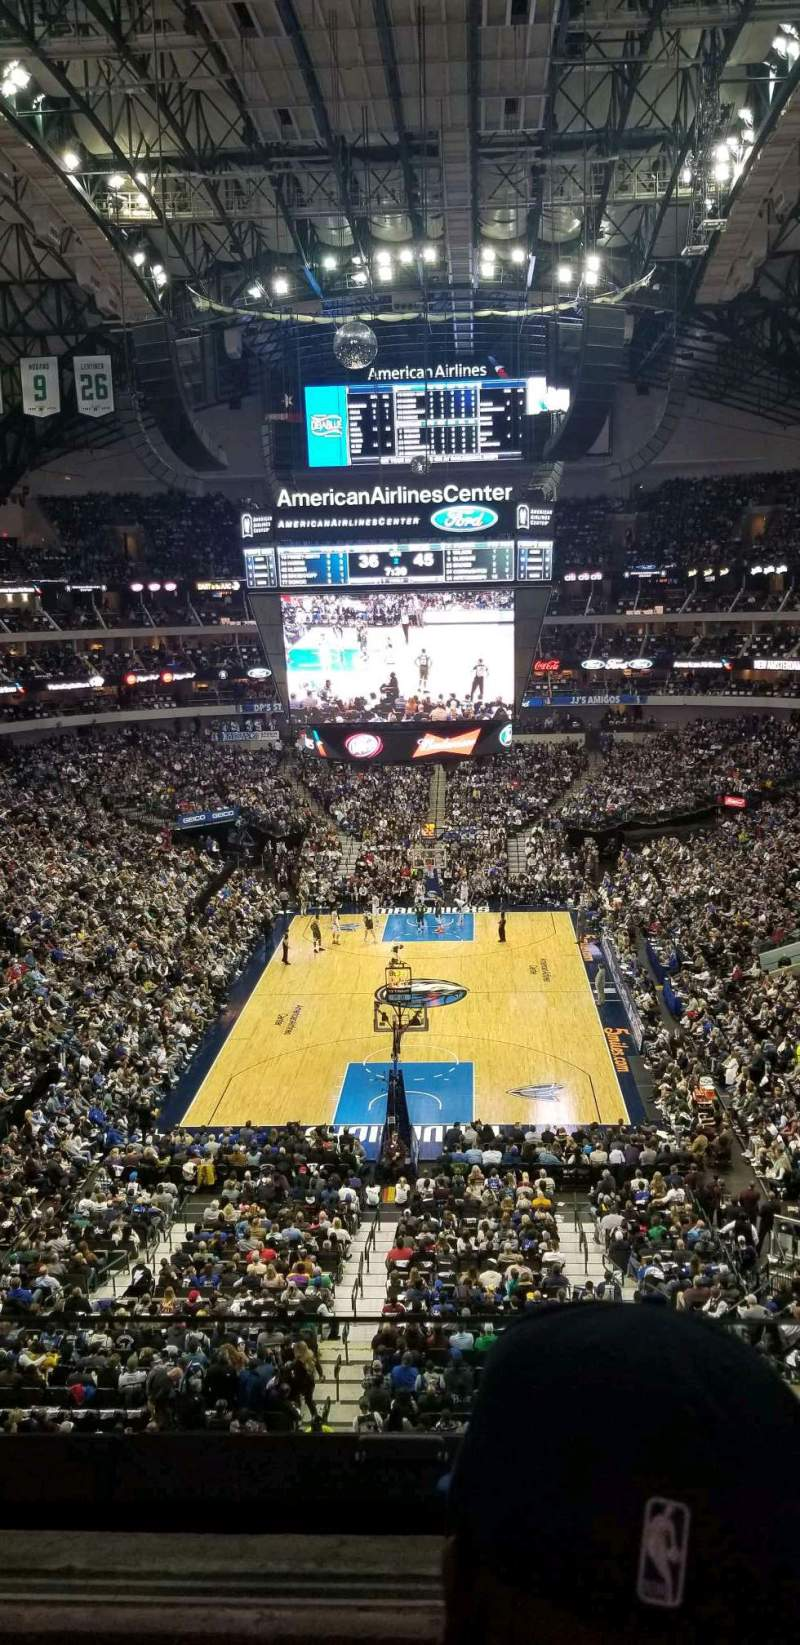 Seating view for American Airlines Center Section 301 Row BB Seat 4